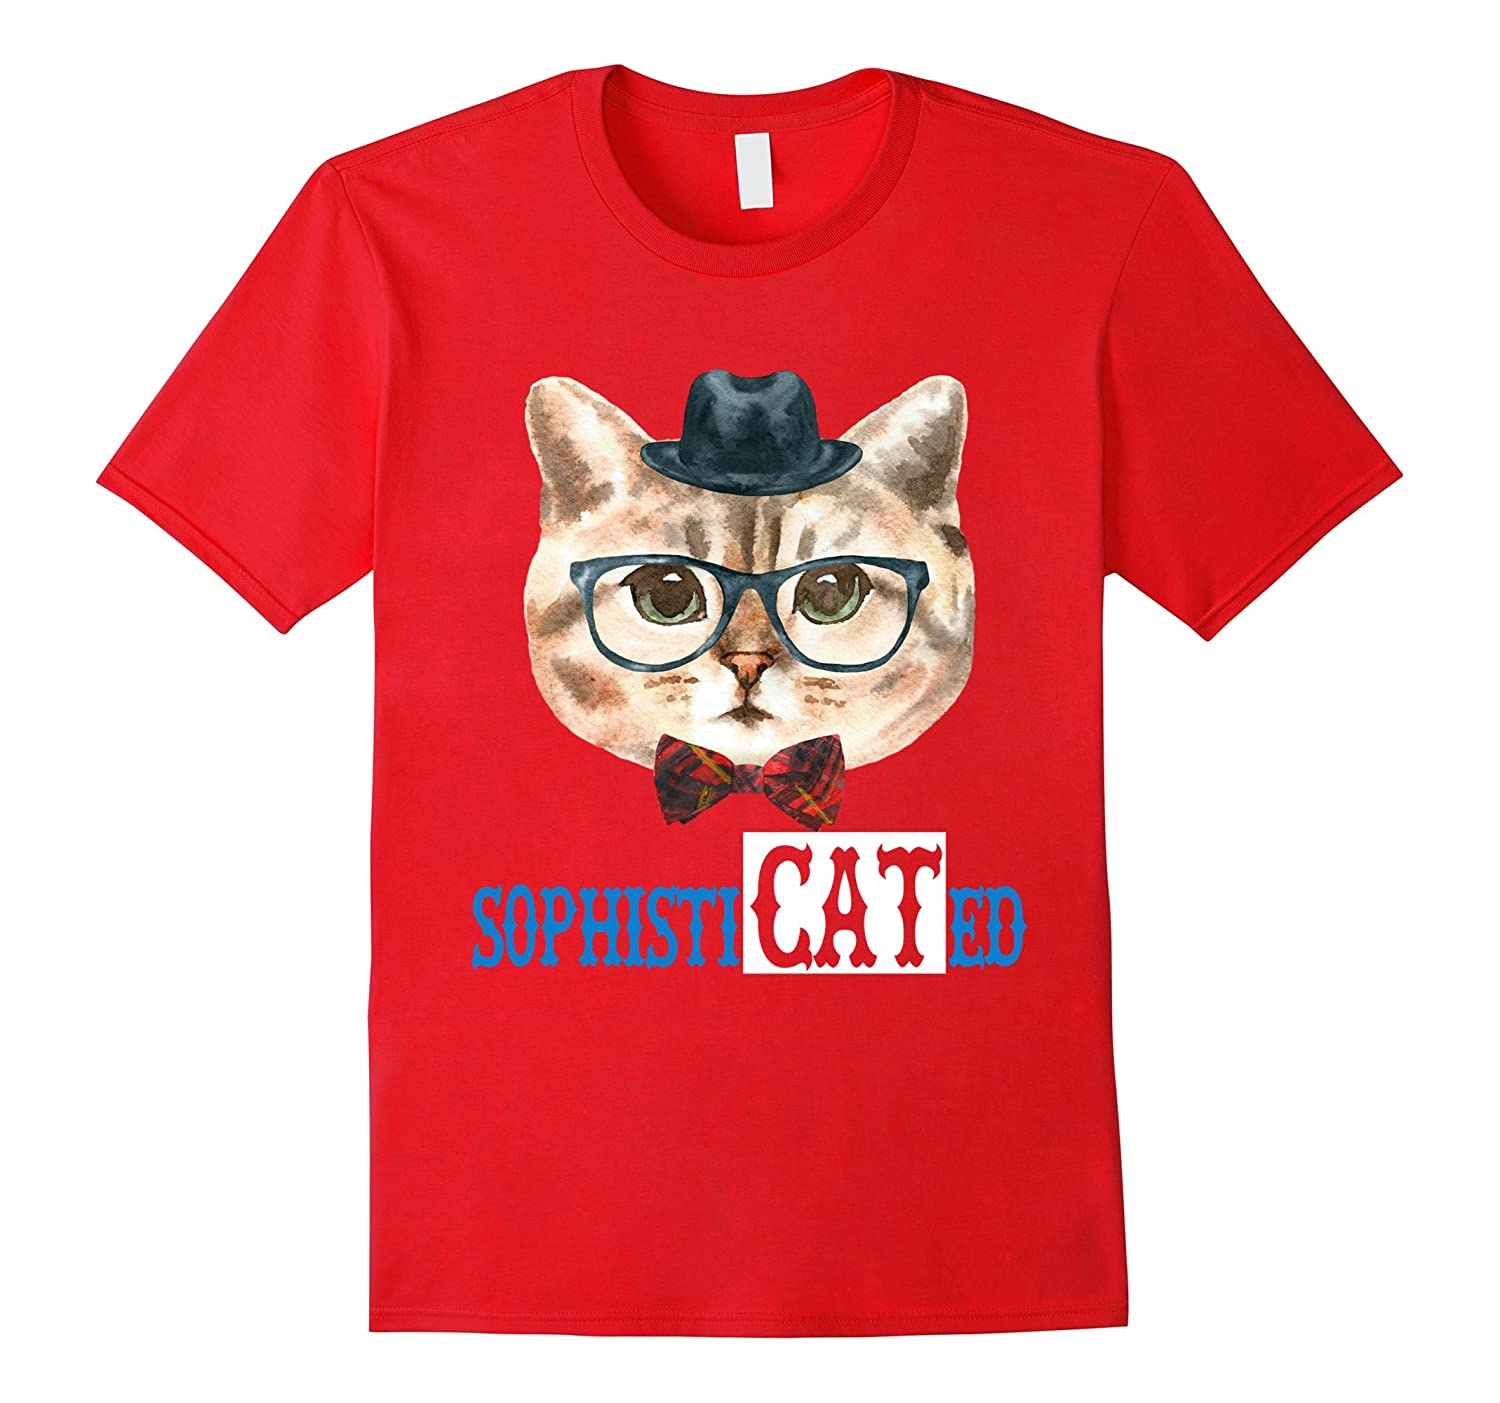 Cat Lovers Shirt - SophistiCATed Tee Shirt-ah my shirt one gift